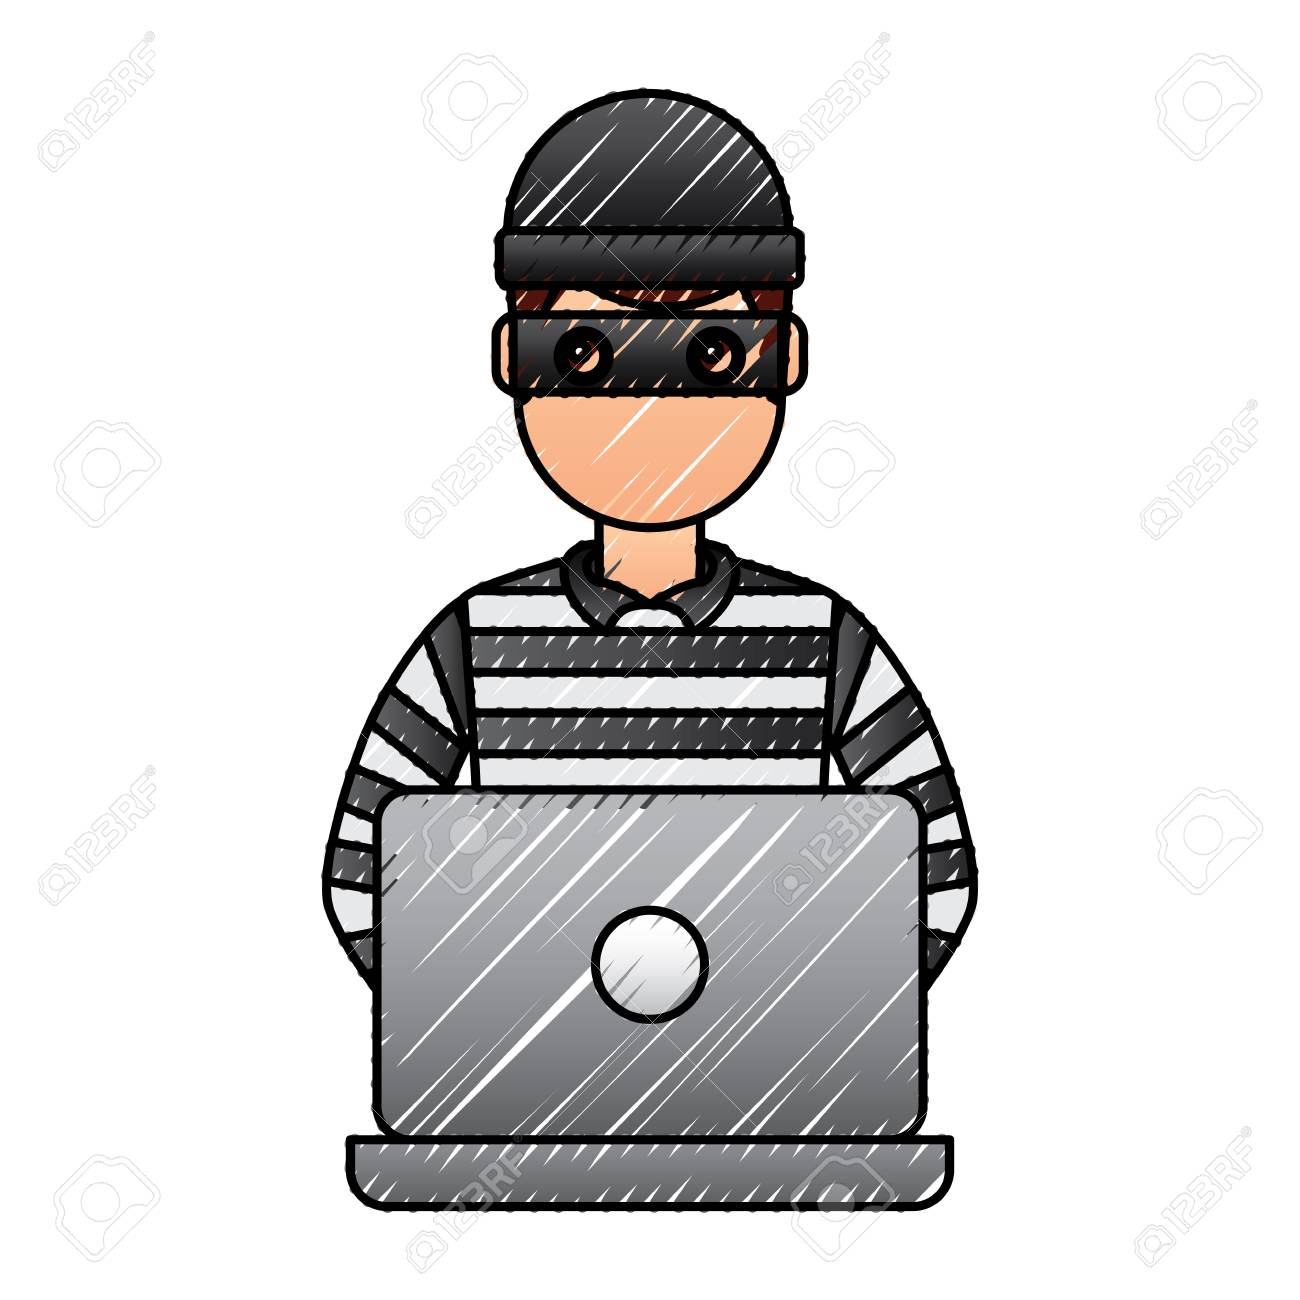 hacker male character working in laptop vector illustration drawing royalty free cliparts vectors and stock illustration image 96029937 hacker male character working in laptop vector illustration drawing